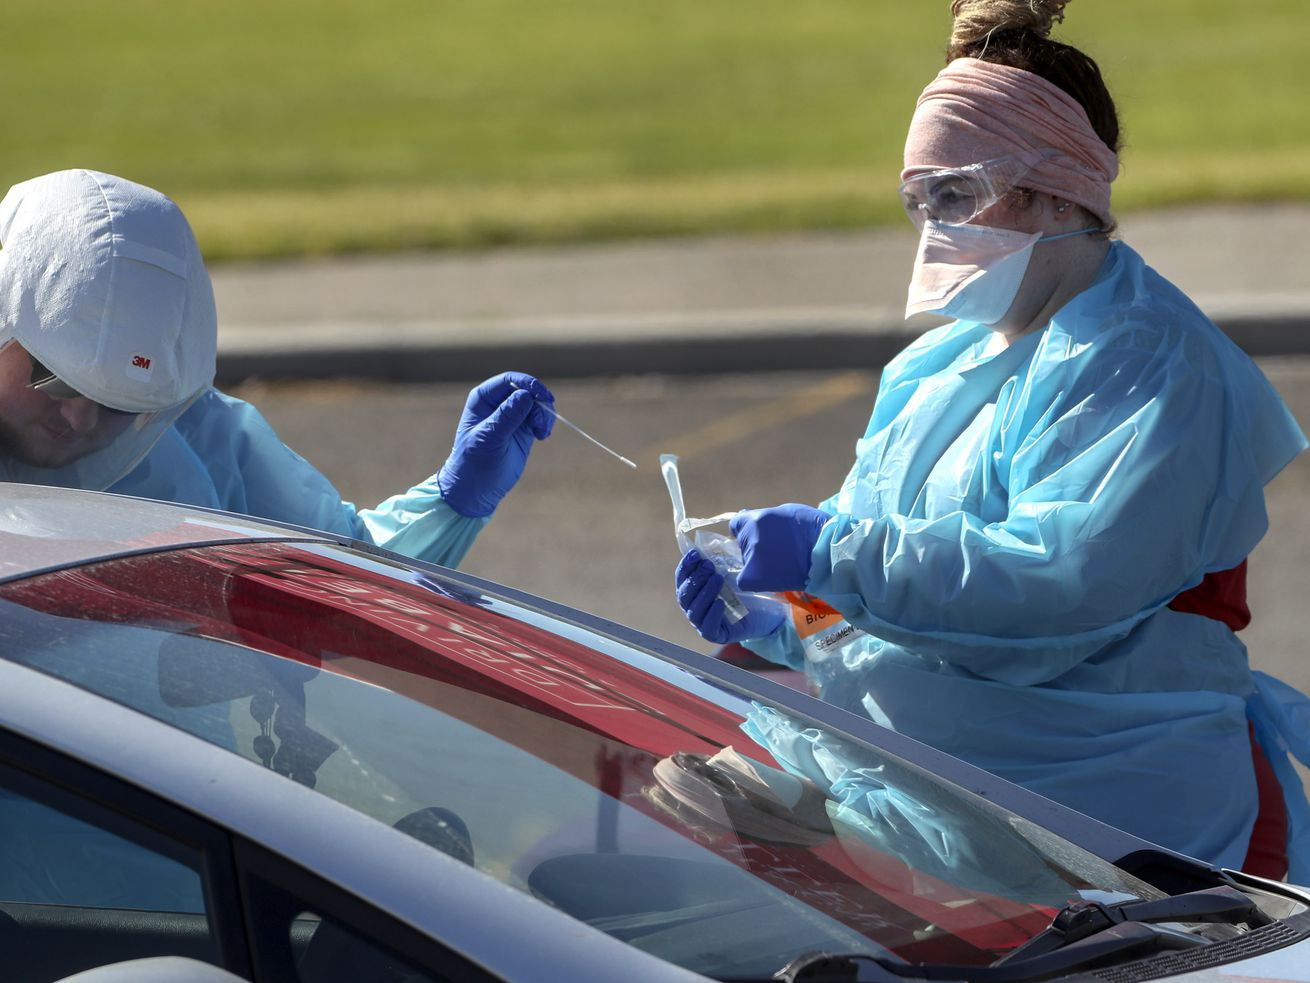 University of Utah Health's Dakota Silva, left, and Ashley Cameron work together as they test people for COVID-19 during the University of Utah's Wellness Bus drive-thru testing event at Centennial Park in West Valley City on Monday, July 6, 2020.